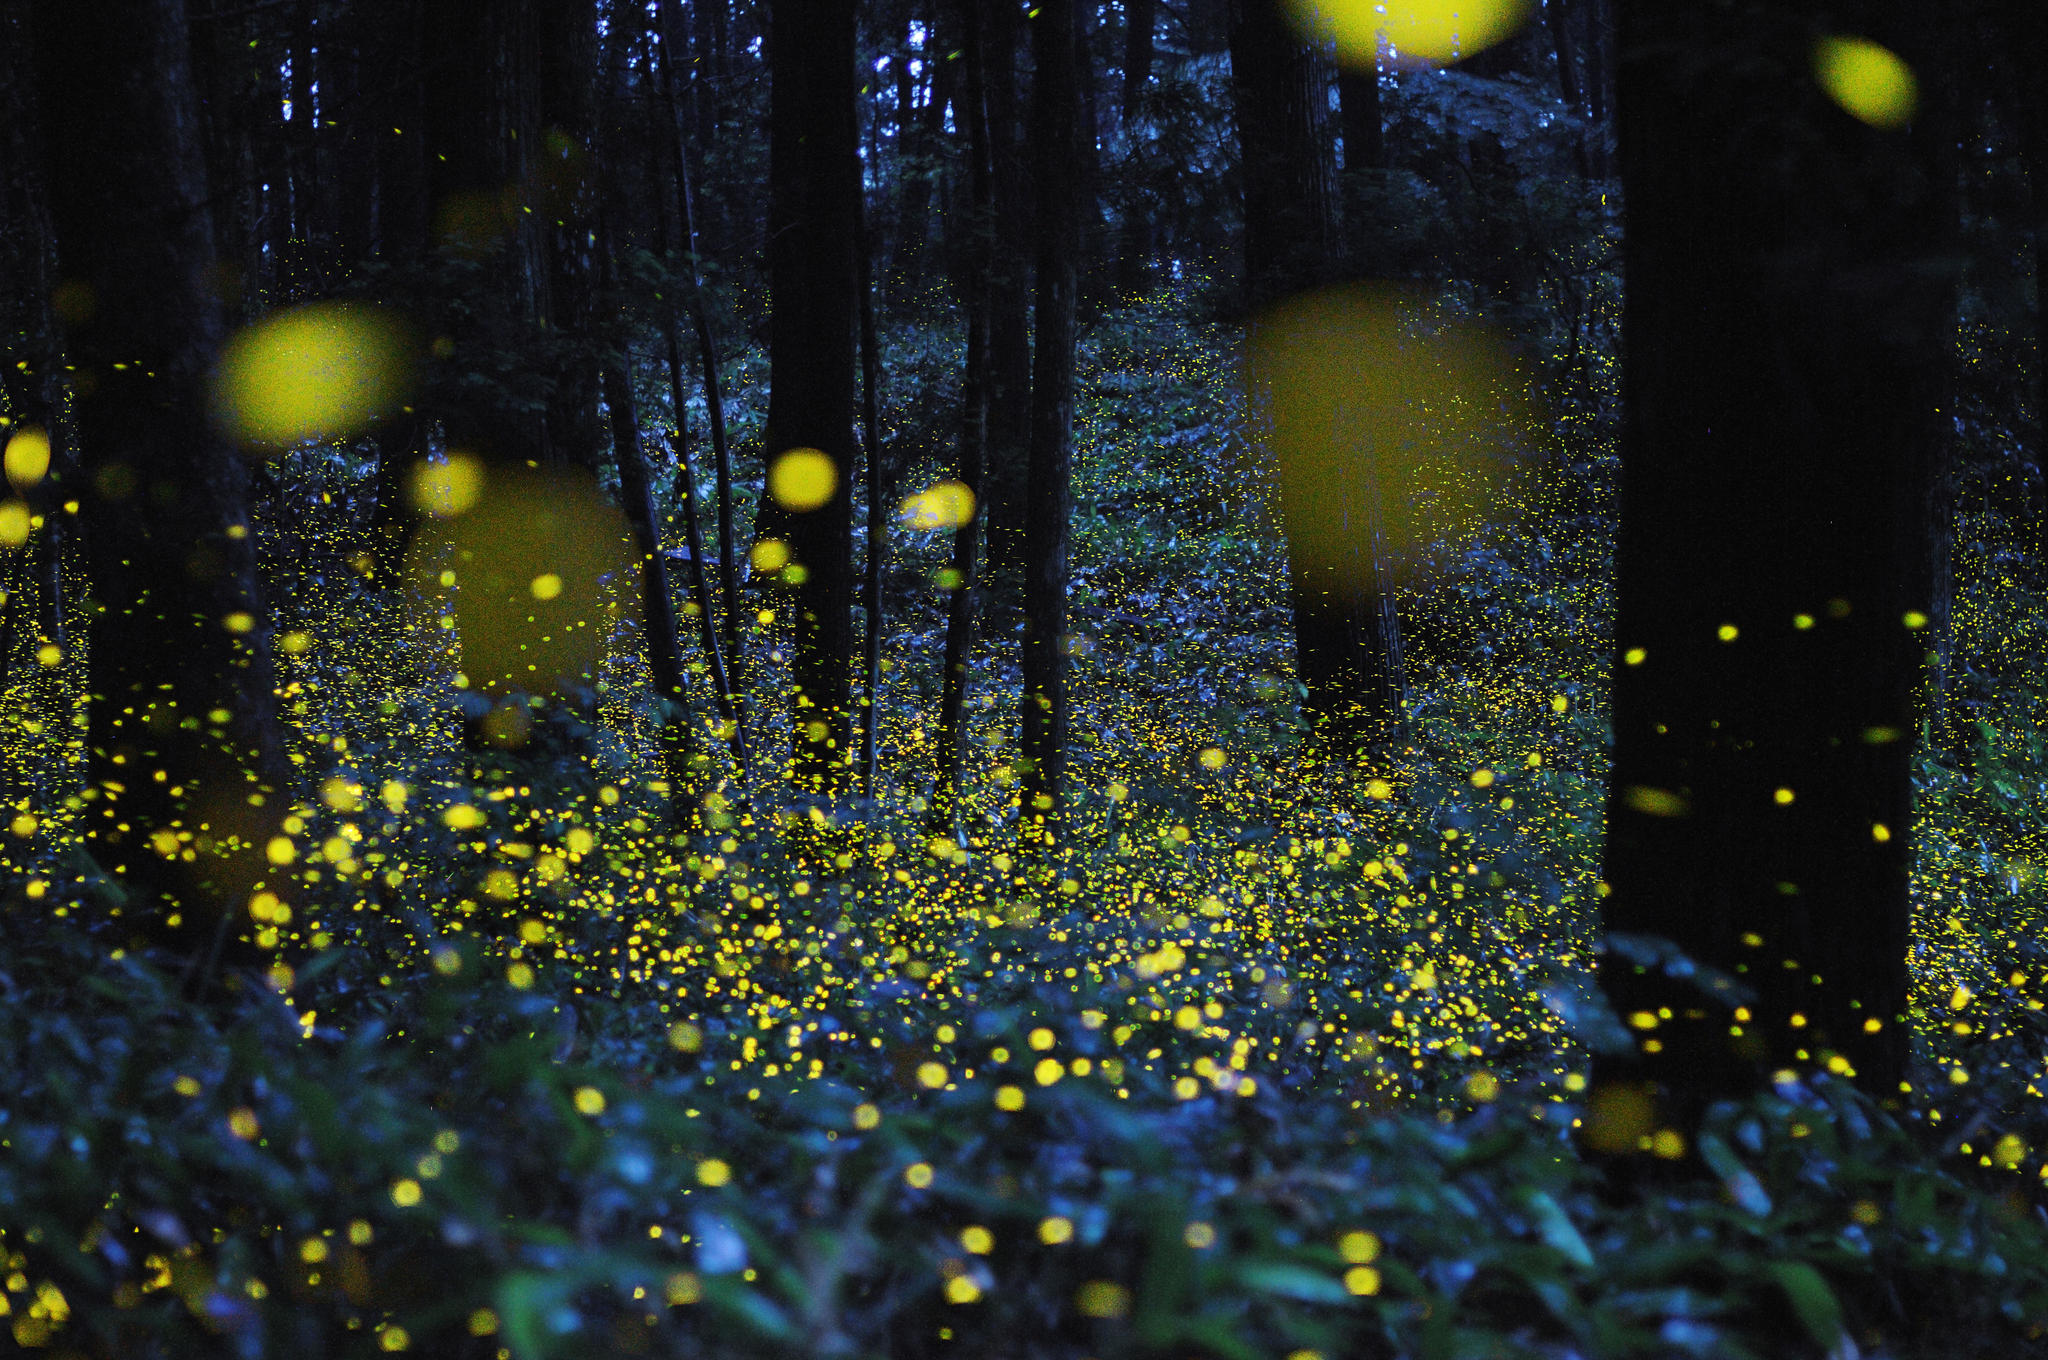 05.-Firefly-image_TH